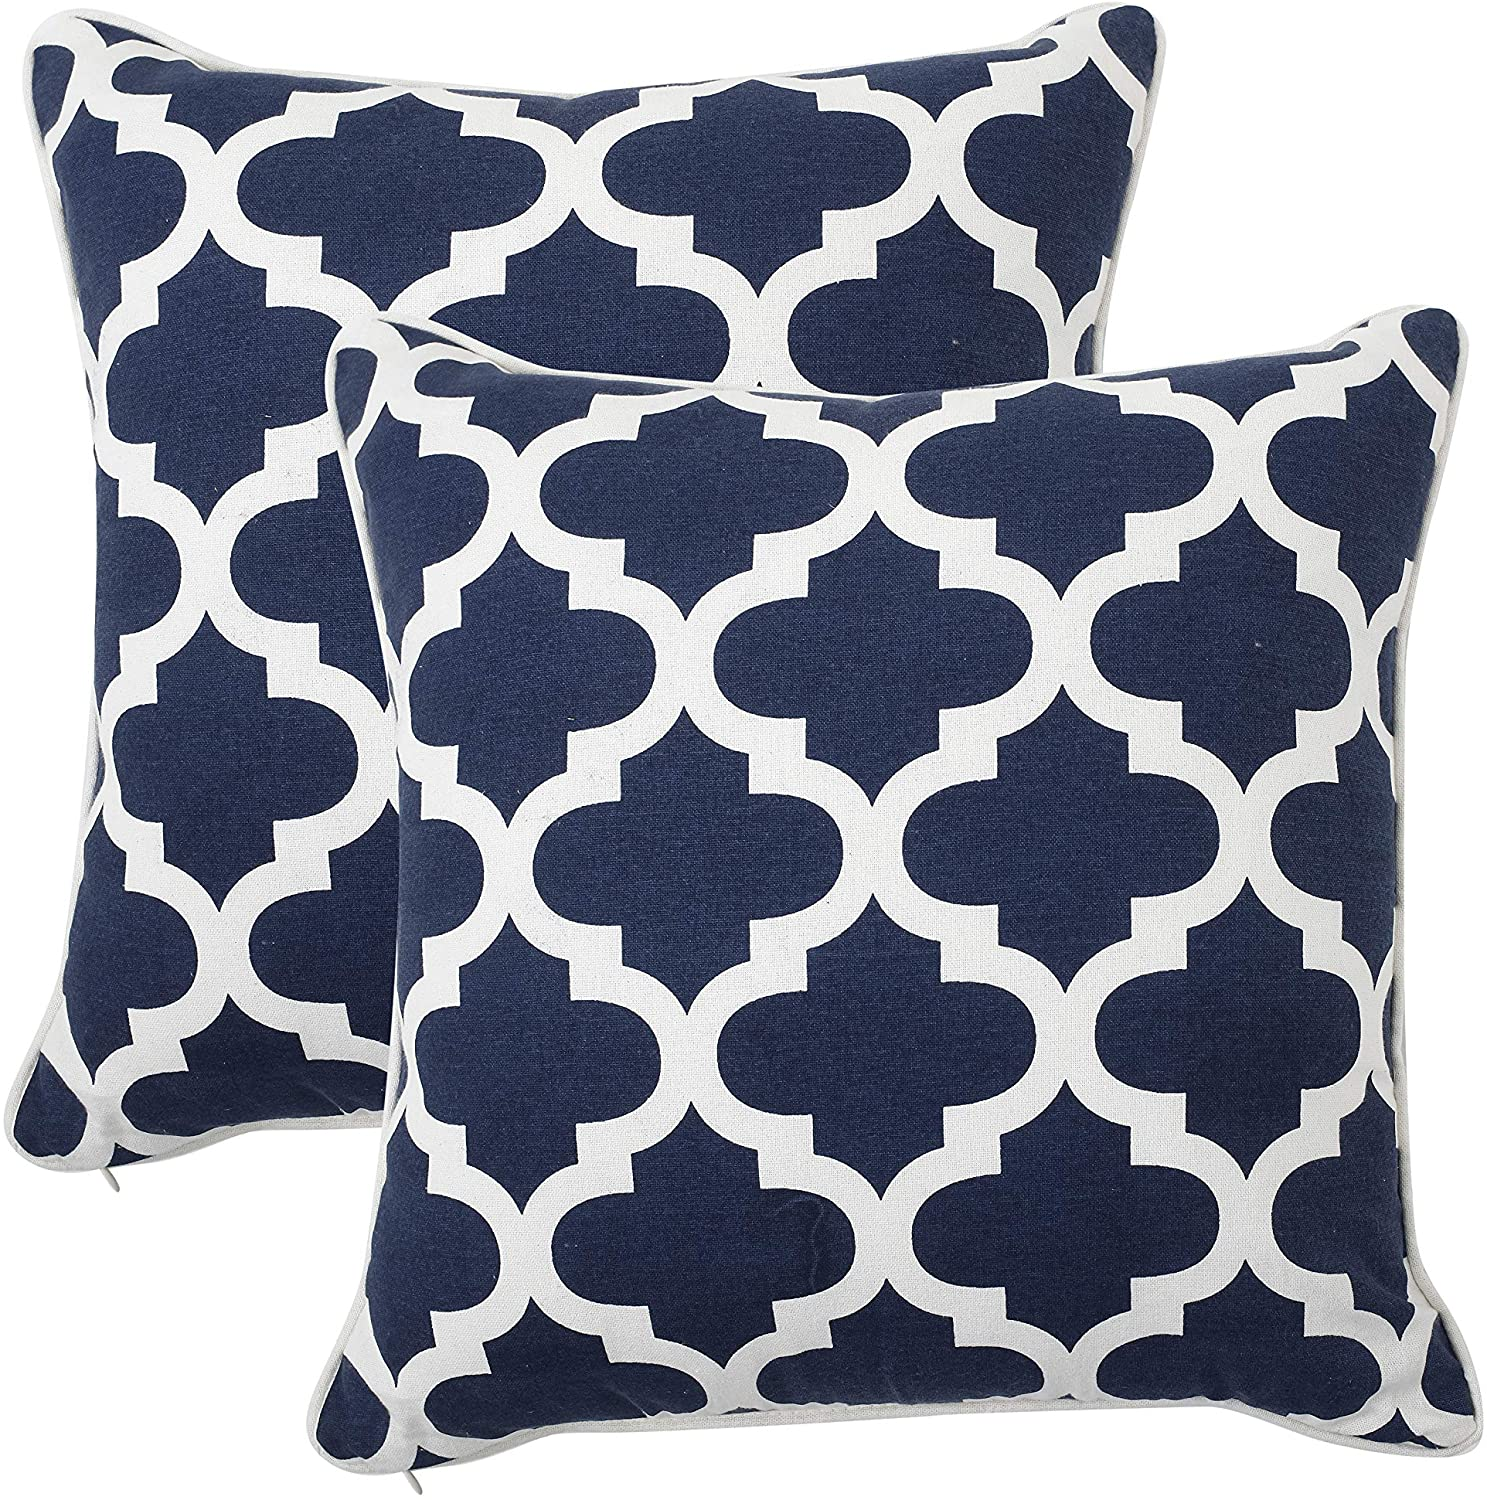 REDEARTH Printed Throw Pillow Cushion Covers-Woven Decorative Farmhouse Cases Set for Couch, Sofa, Bed, Chair, Dining, Patio, Outdoor, car; 100% Cotton (18x18; Navy) Pack of 2